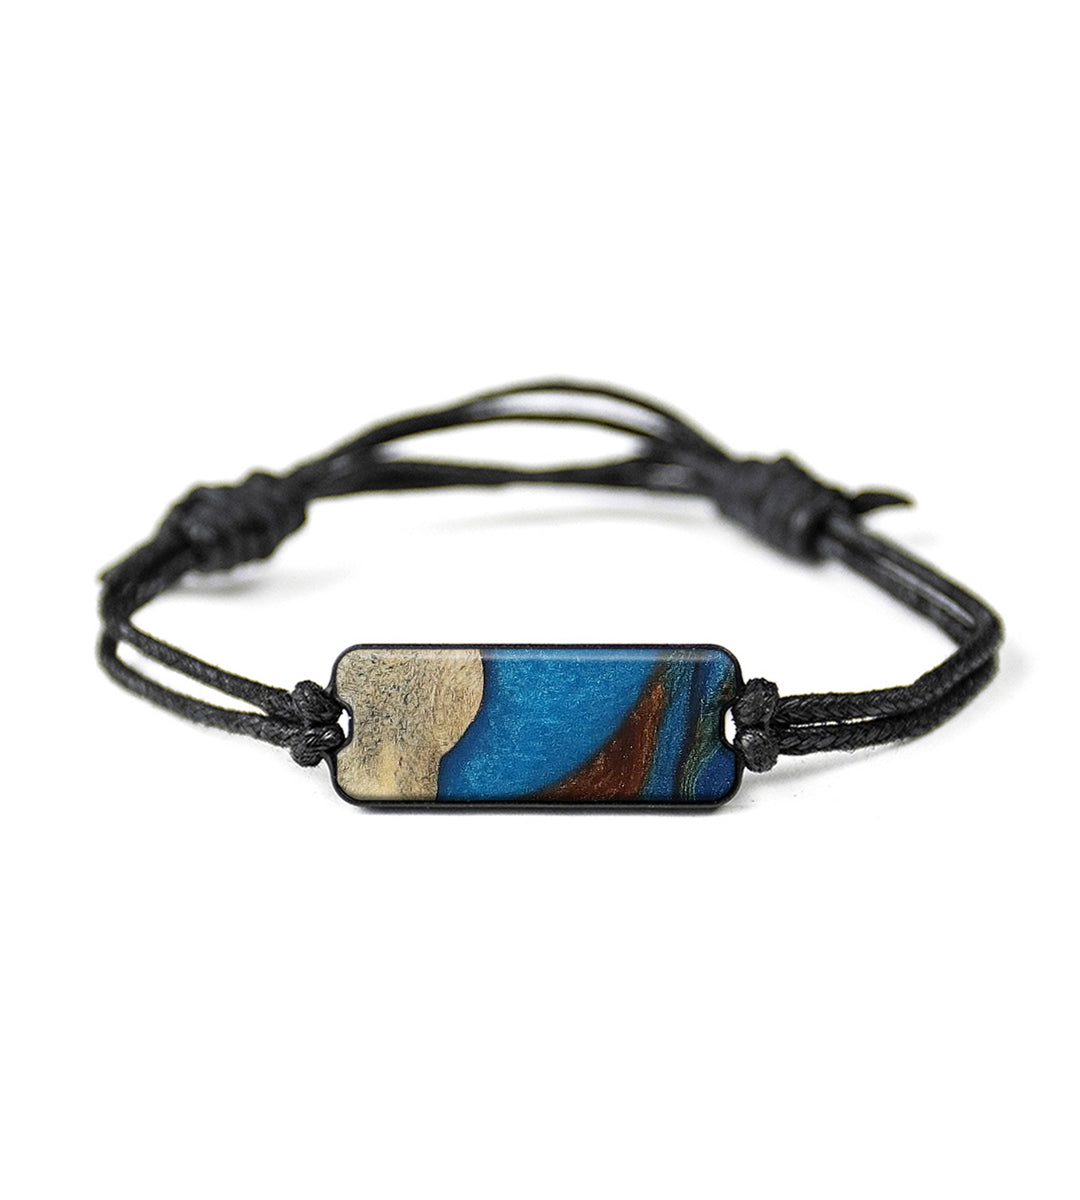 Classic Wood+Resin Bracelet - Robinetta (Teal & Gold, 395428)